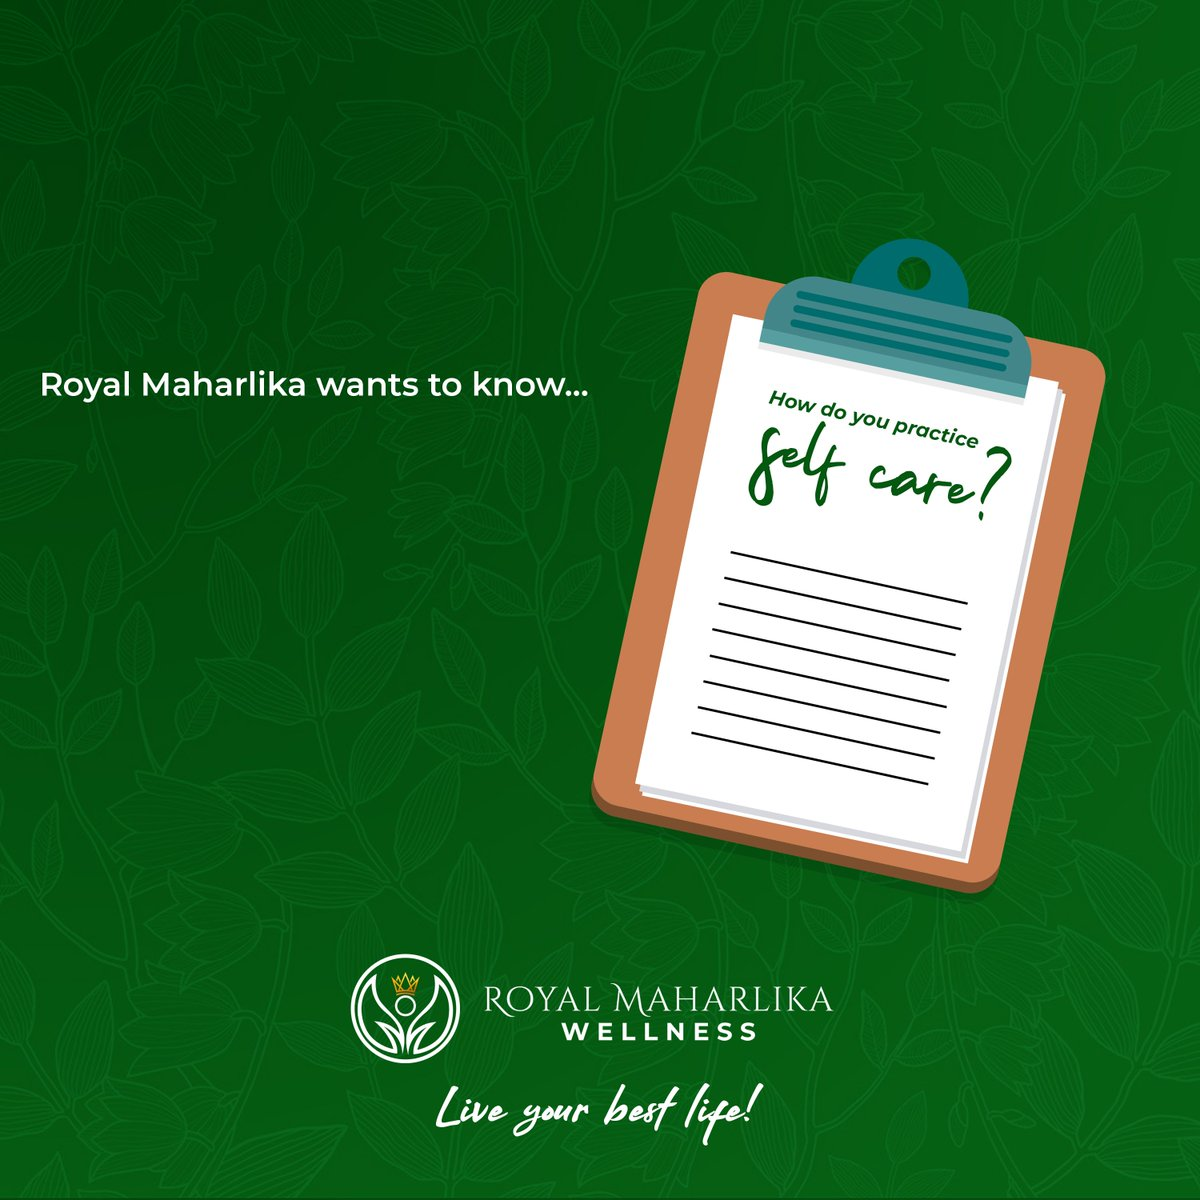 Share your self-care ideas and routines! Put your answers in the comments below  #RoyalMaharlika #Liveyourbestlife https://t.co/c0KcJB5lia